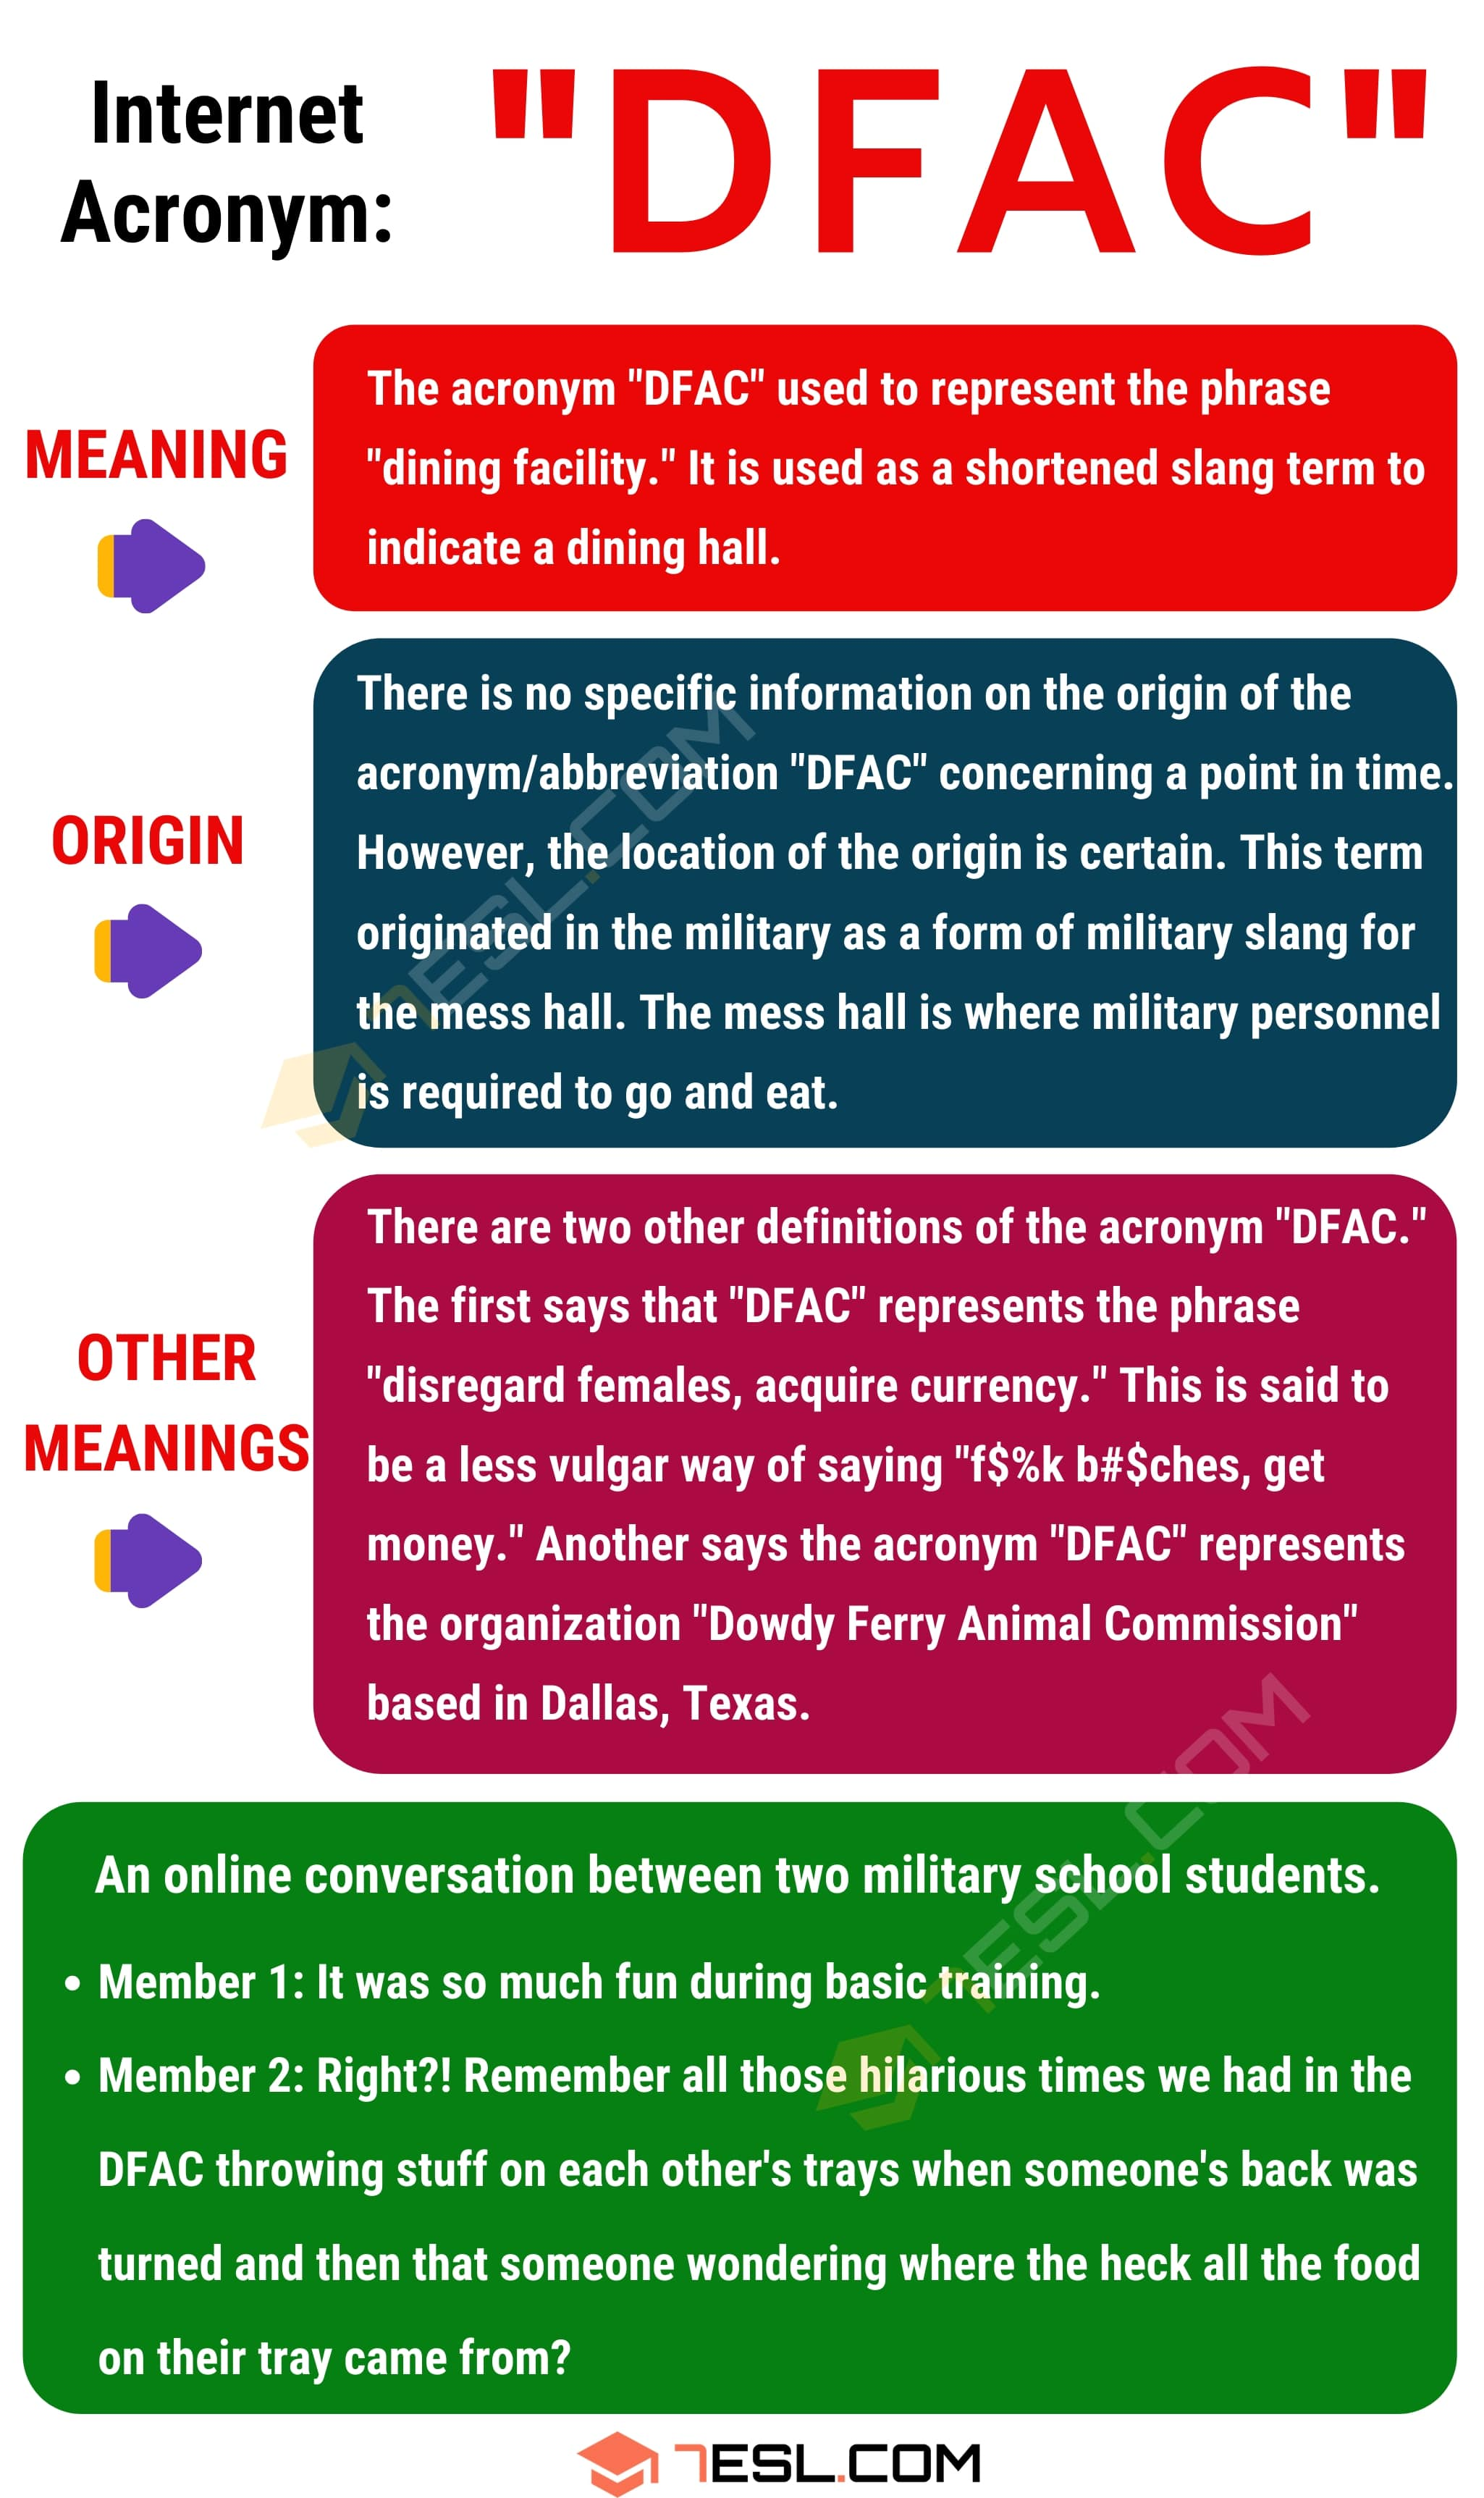 DFAC Meaning: What Does DFAC Stand For?